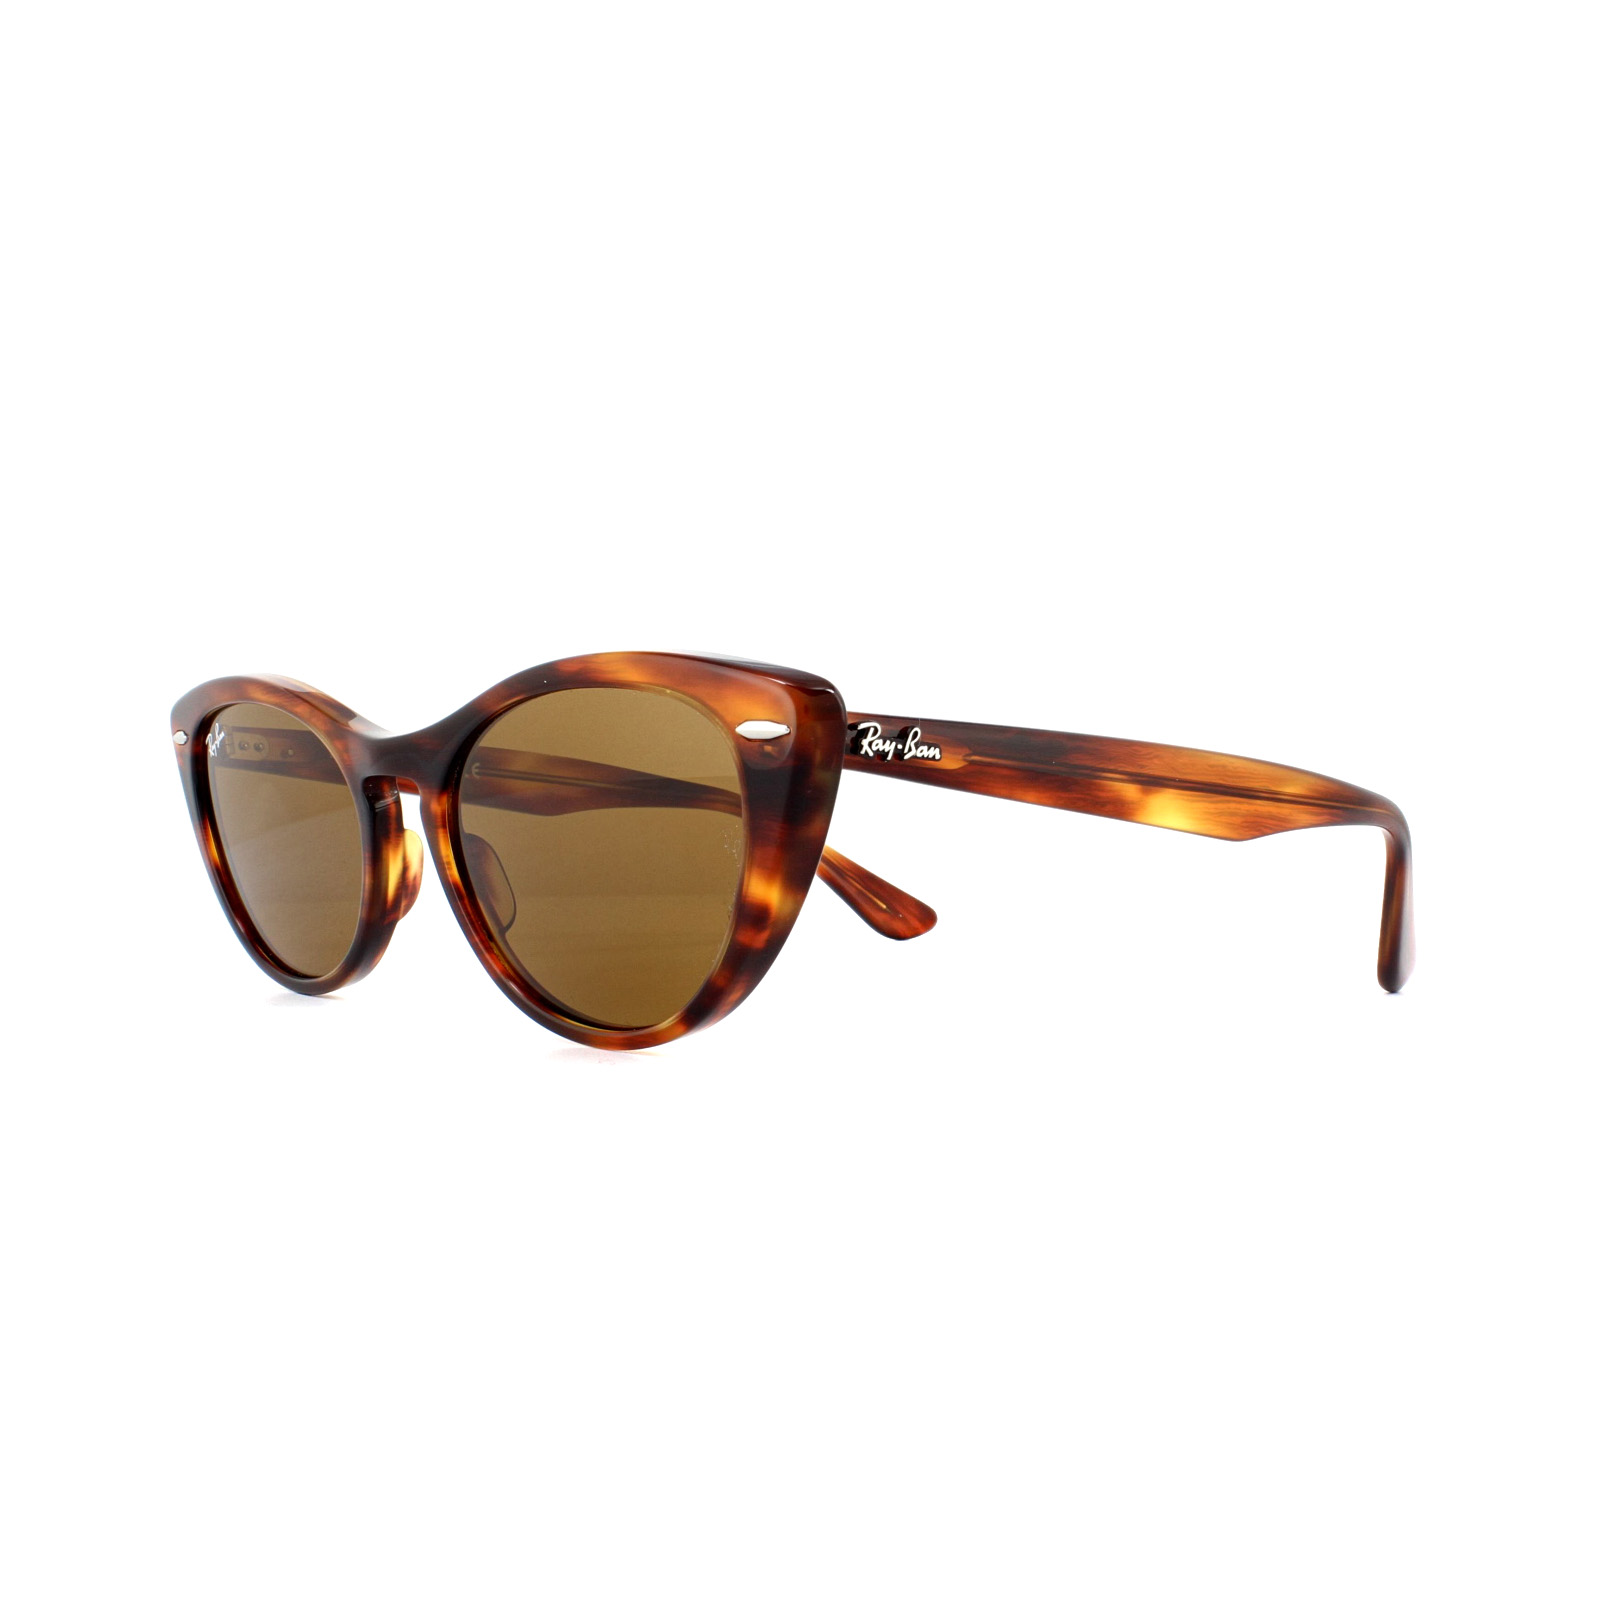 9e26fb6ce4c98 Ray-Ban Sunglasses Nina RB4314N 954 33 Havana Brown 8053672970715